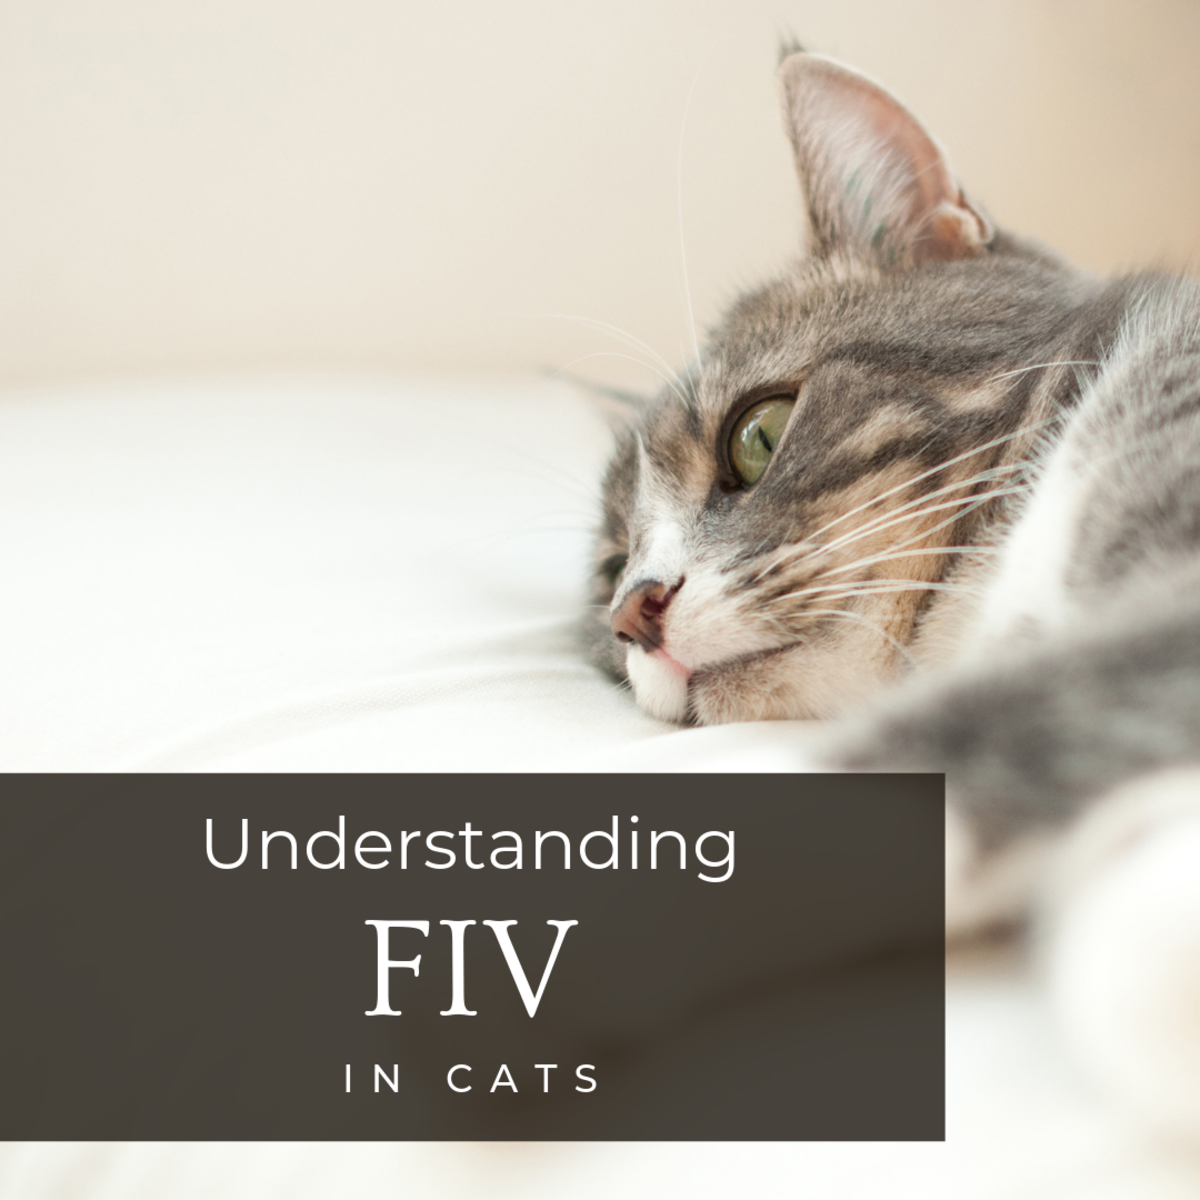 This article will help you better understand FIV with information about diagnosis, treatment, and prevention methods.